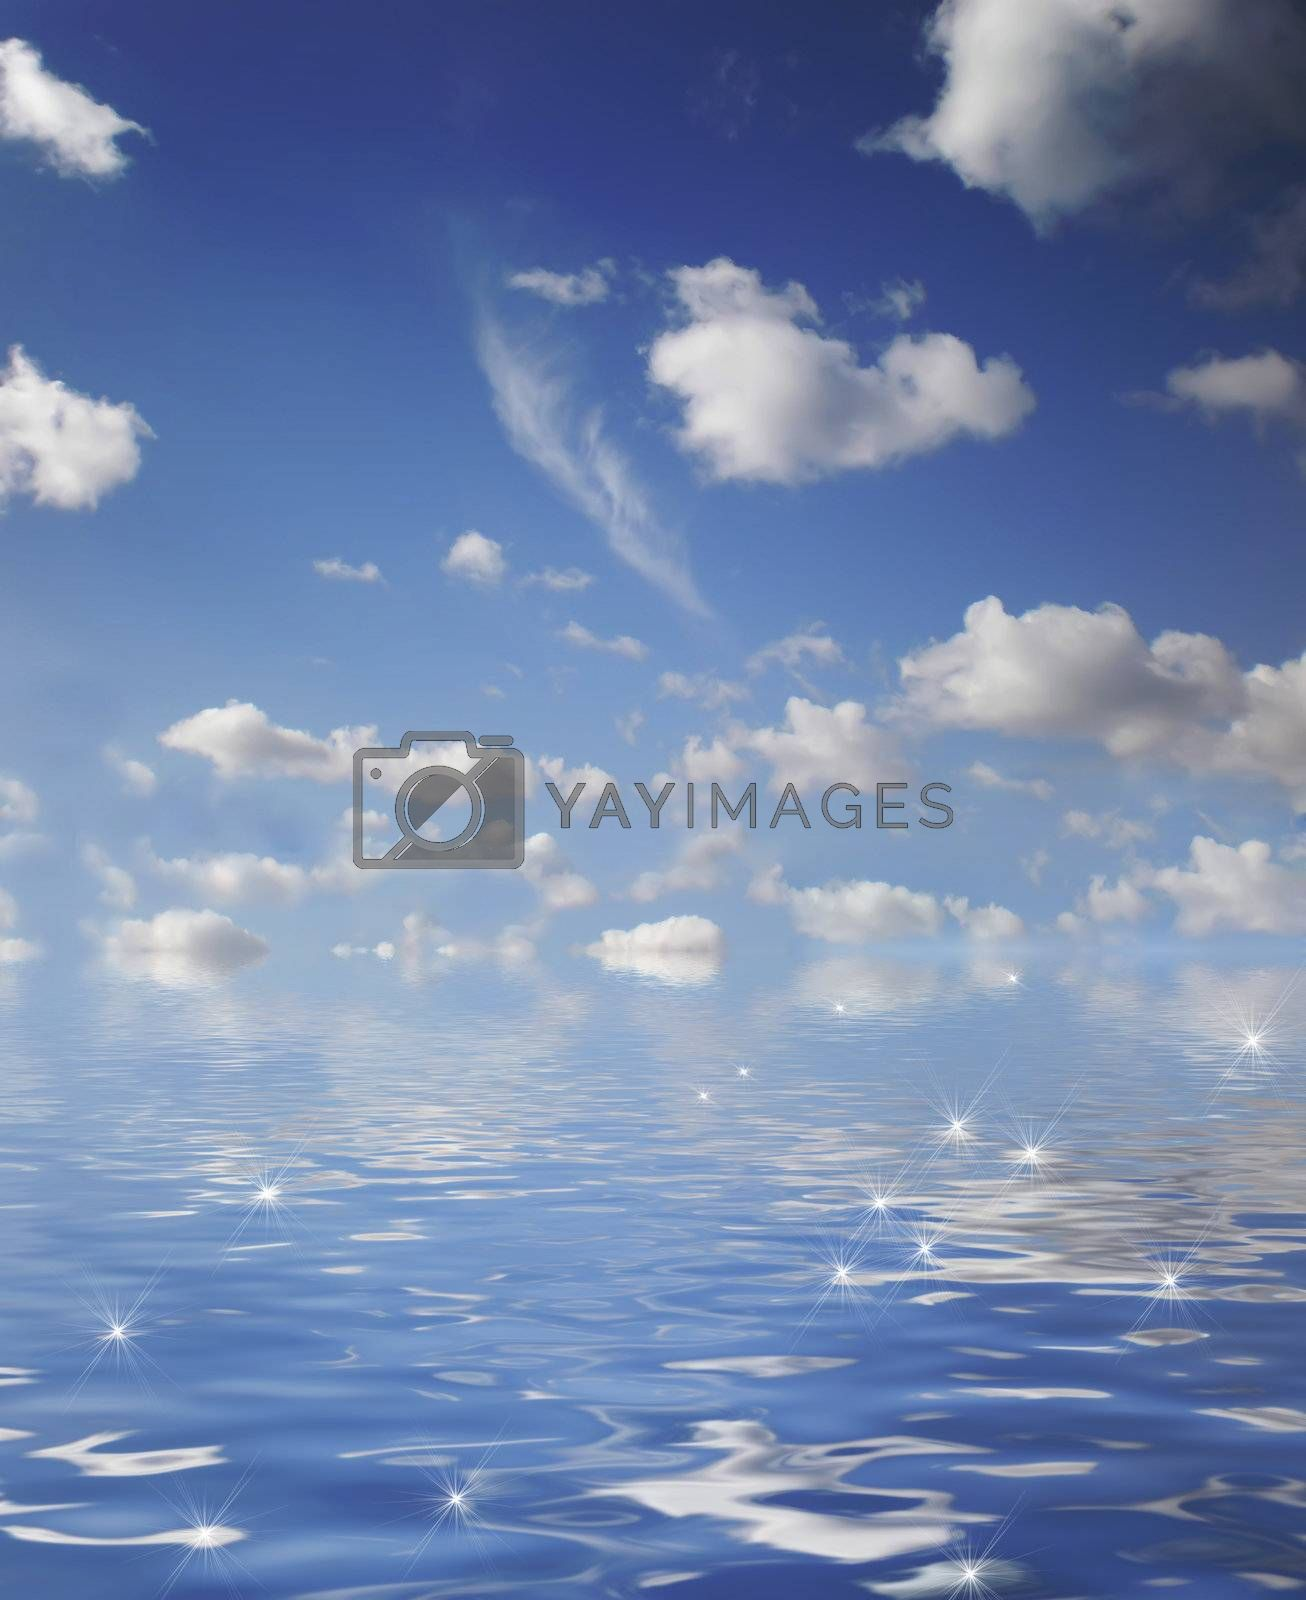 Royalty free image of sky and ocean by Dessie_bg